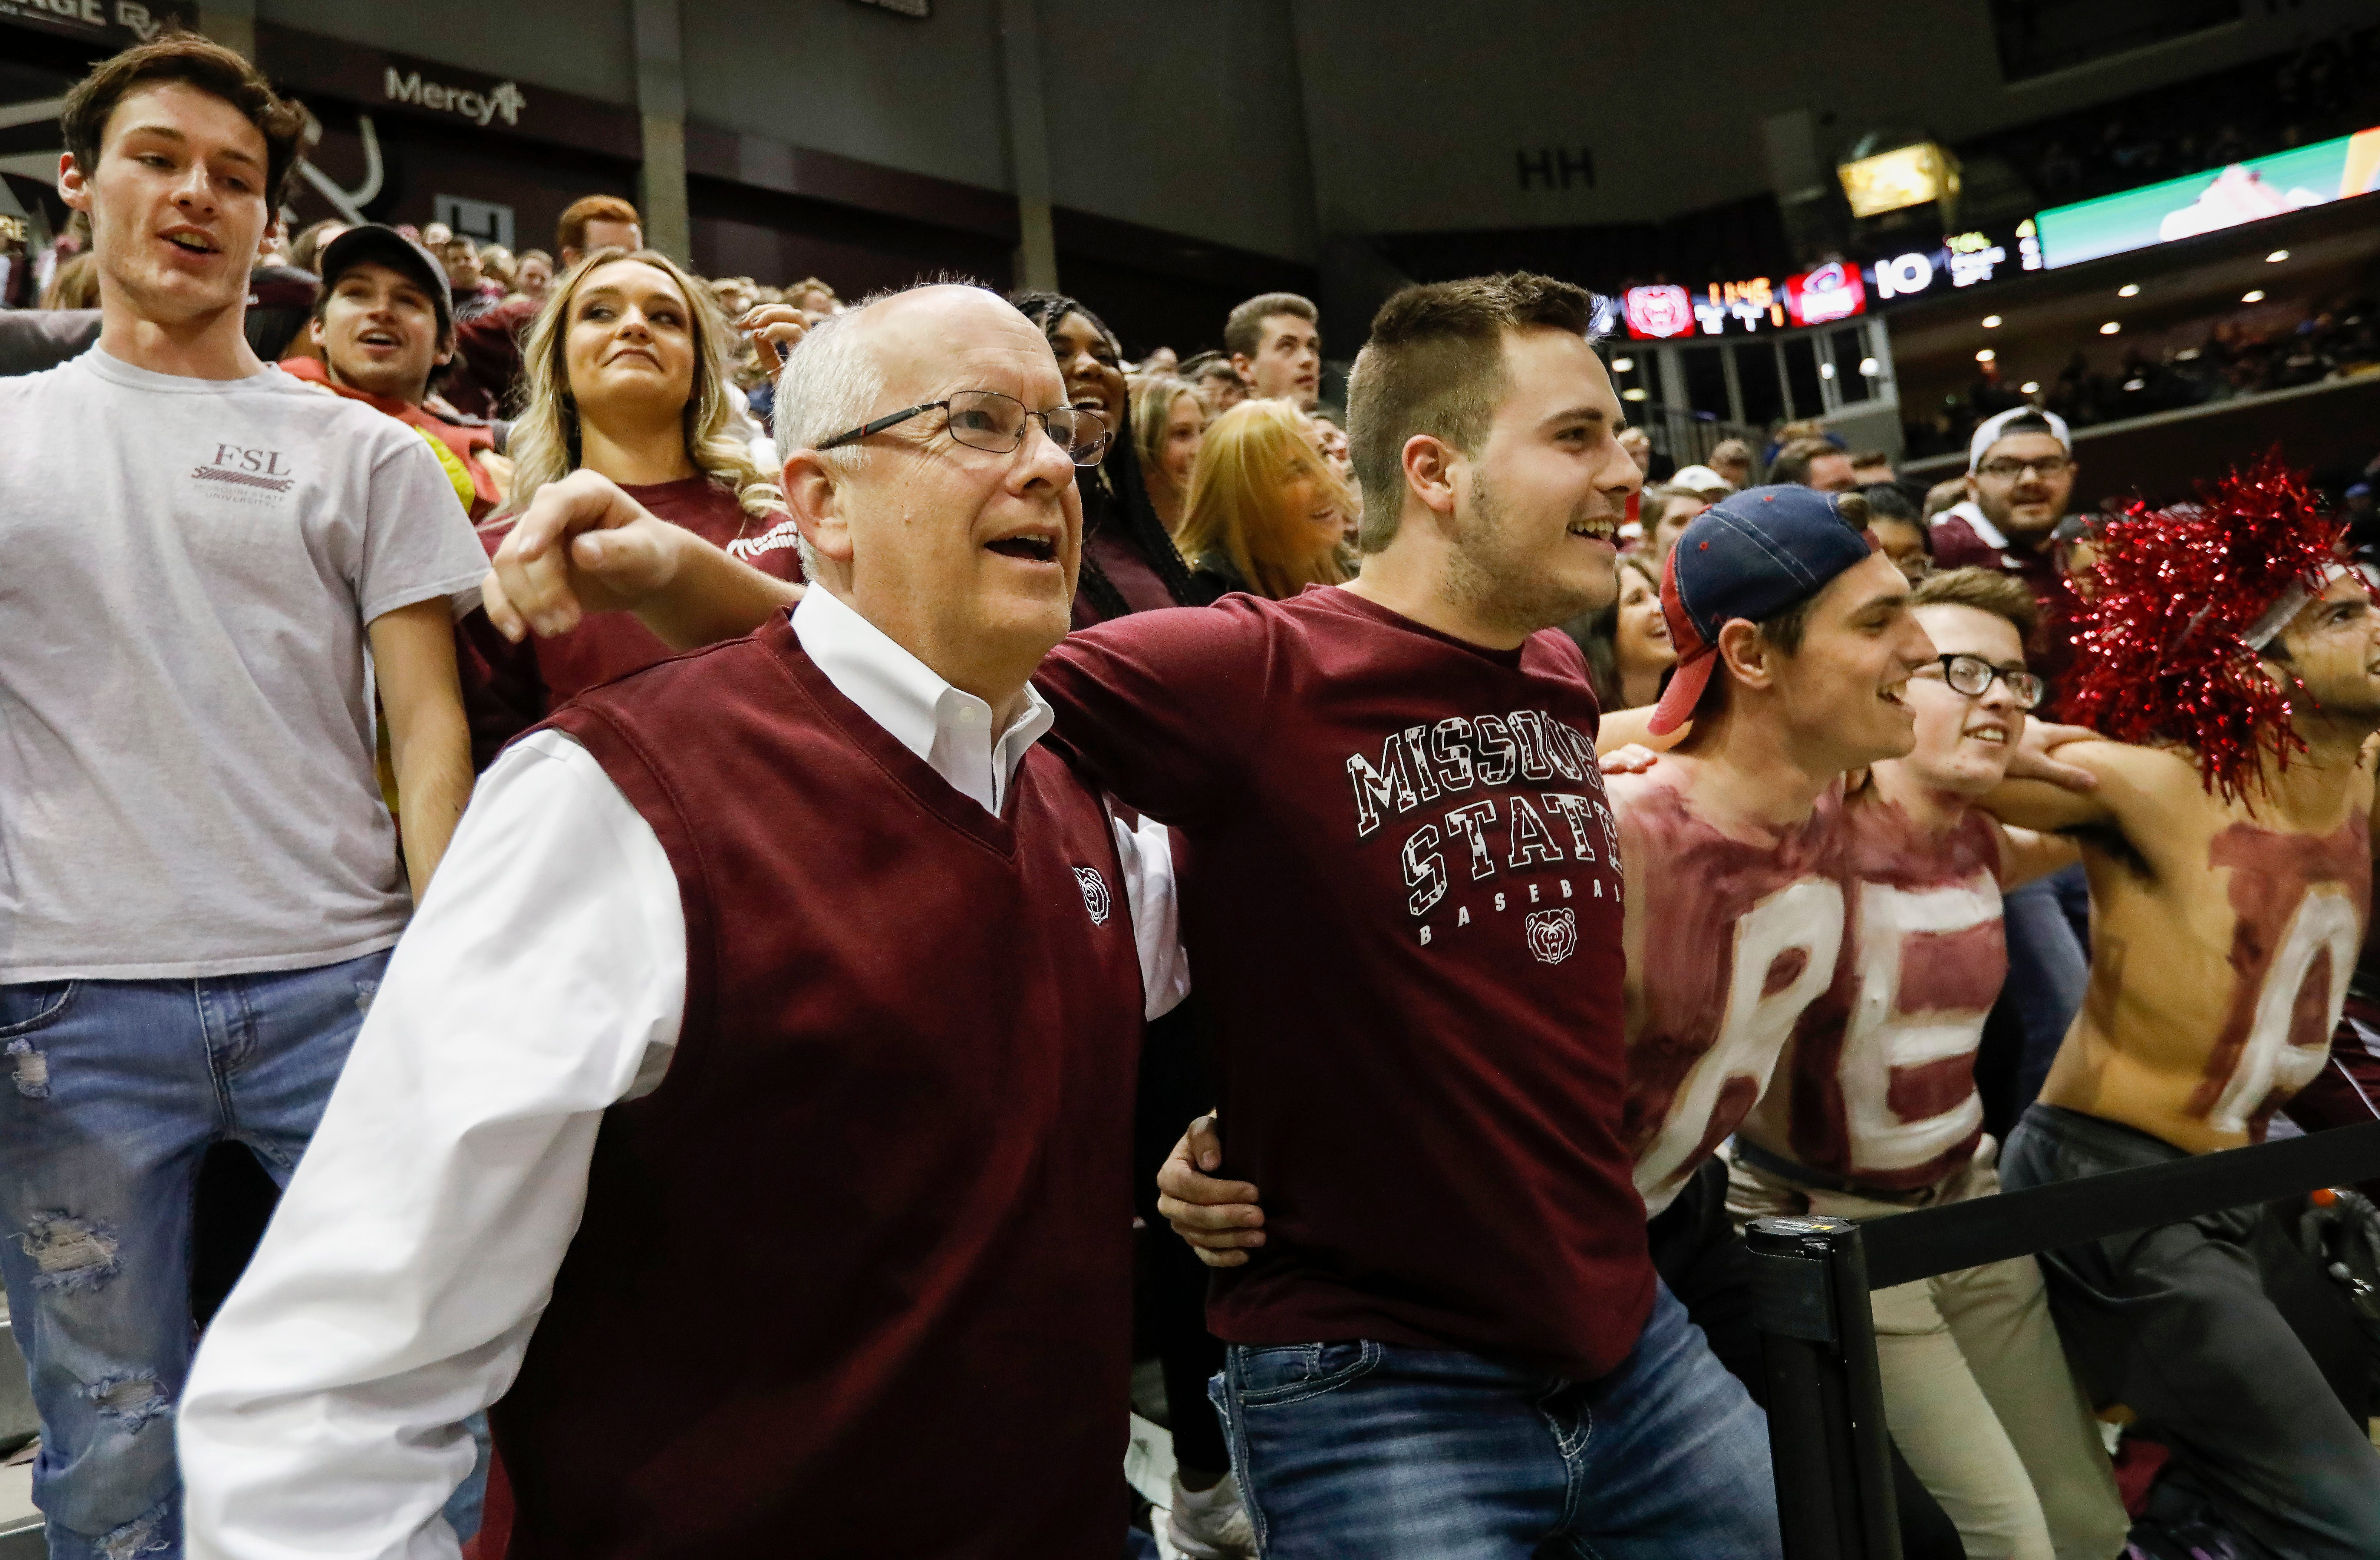 Missouri State University defeated Robert Morris 74-60 at JQH Arena on Nov. 918 in front of a crowd of 5,038 fans.